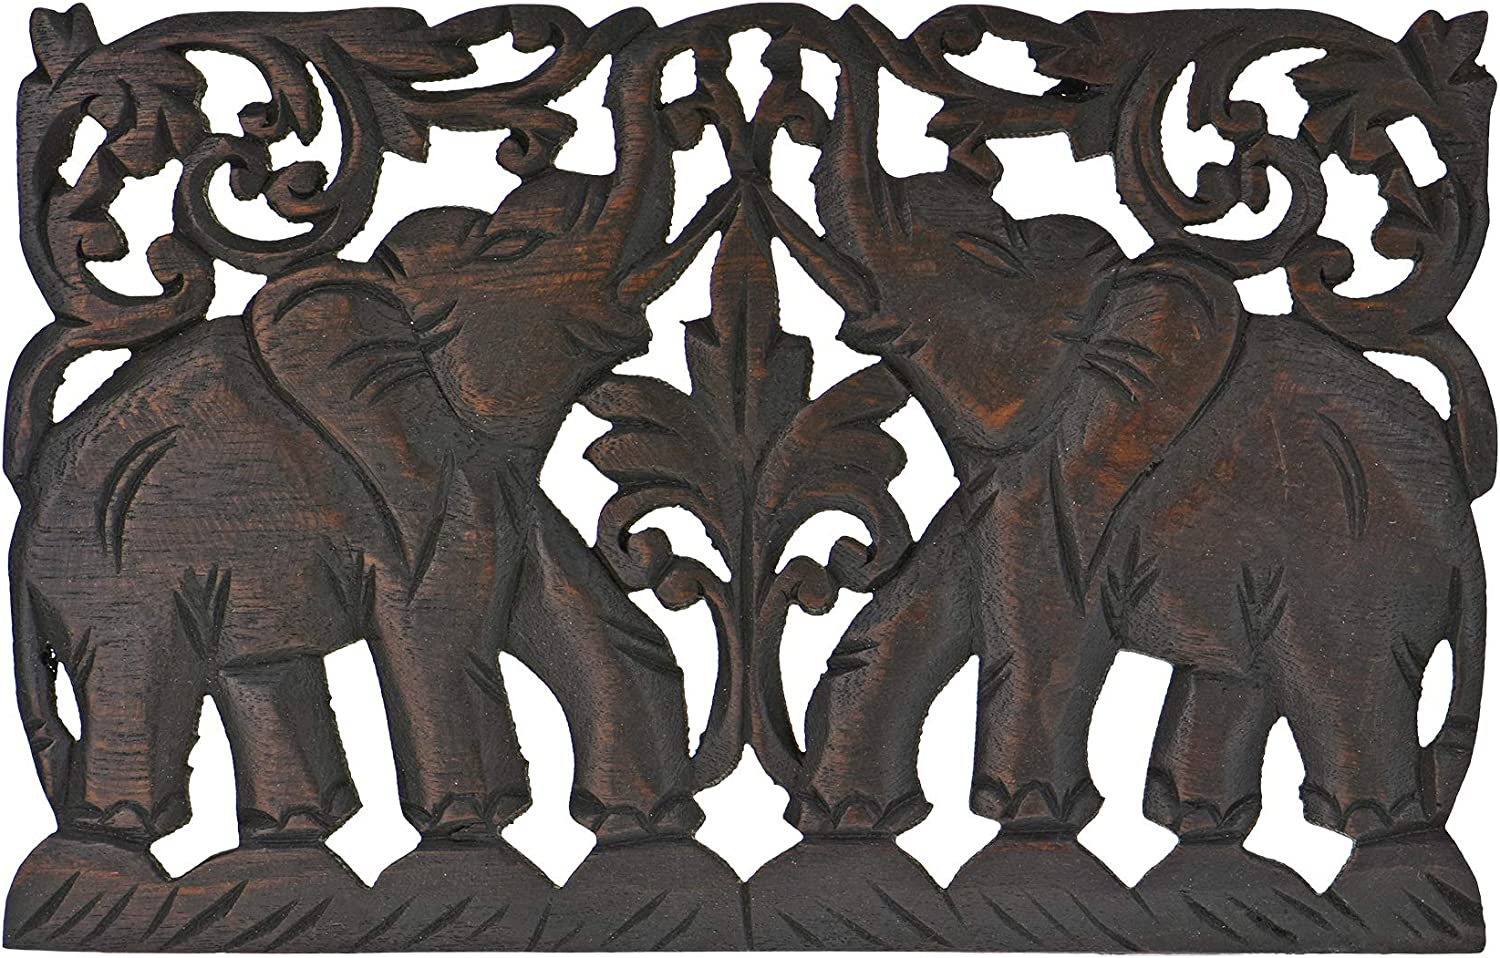 Jubilant Thai Elephant Duo Hand Carved Teak Wood Wall Art Relief Panel - Fair Trade Handicraft by Thai Artisans